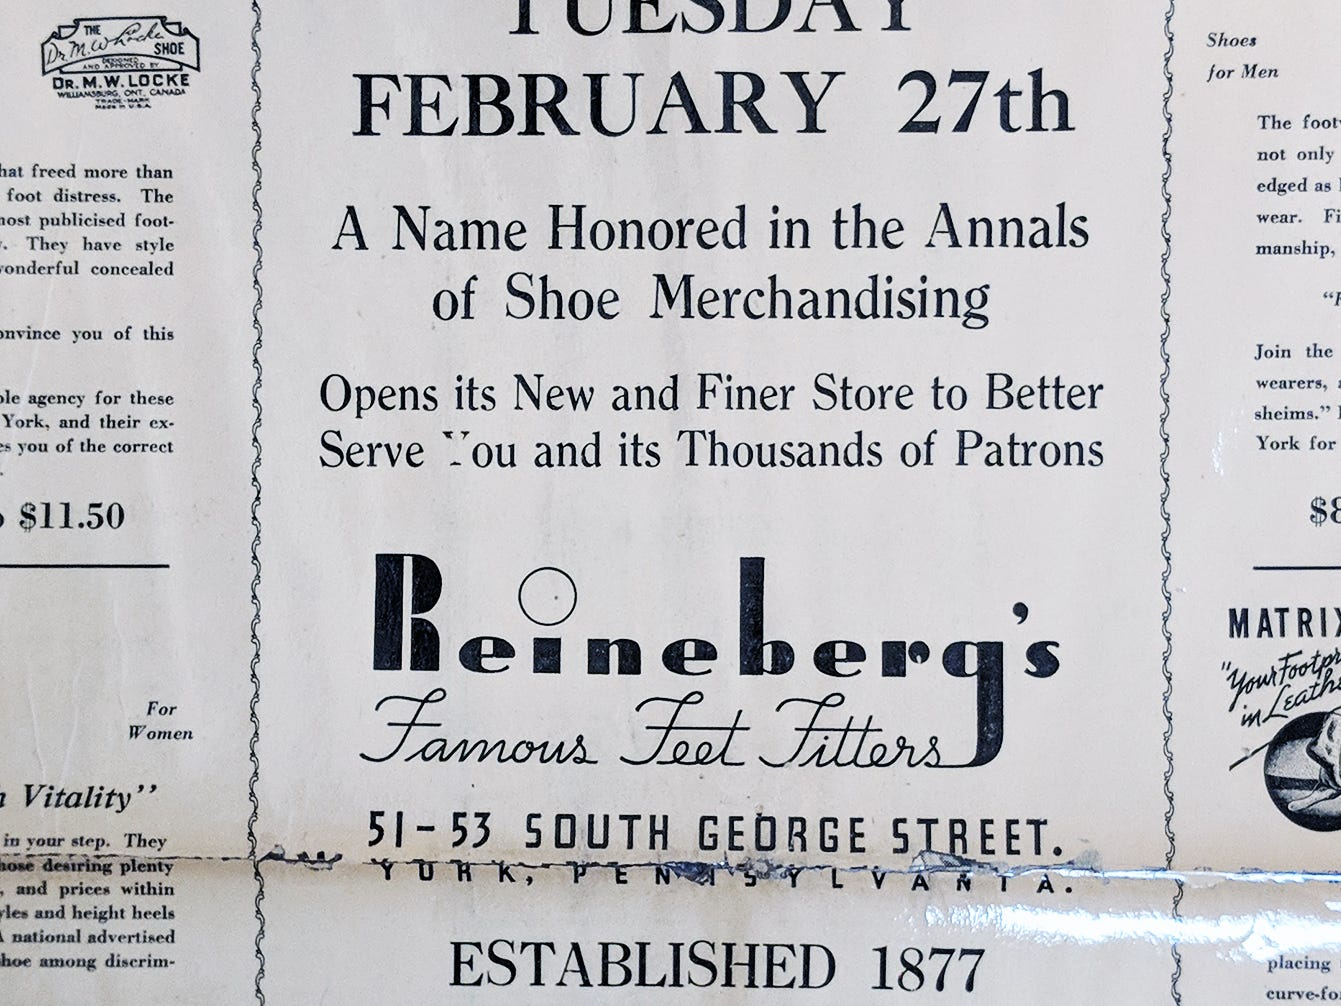 Reineberg's Shoe store in an advertisement from 1940 announcing the new location on South George Street.